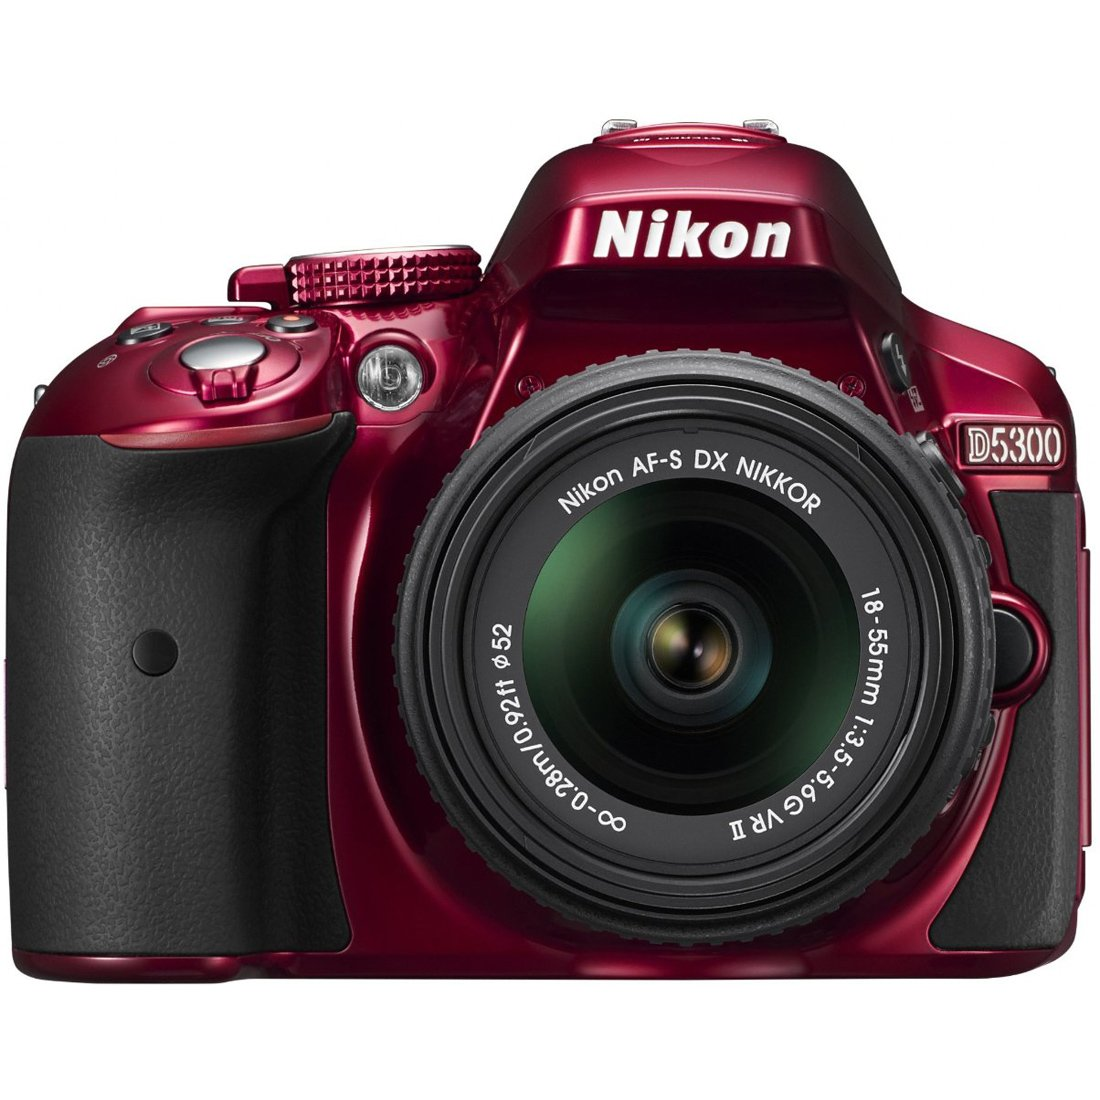 Nikon D5300 24.2 MP CMOS Digital SLR Camera with 18-55mm f/3.5-5.6G ED VR II Auto Focus-S DX NIKKOR Zoom Lens (Red)(Certified Refurbished)